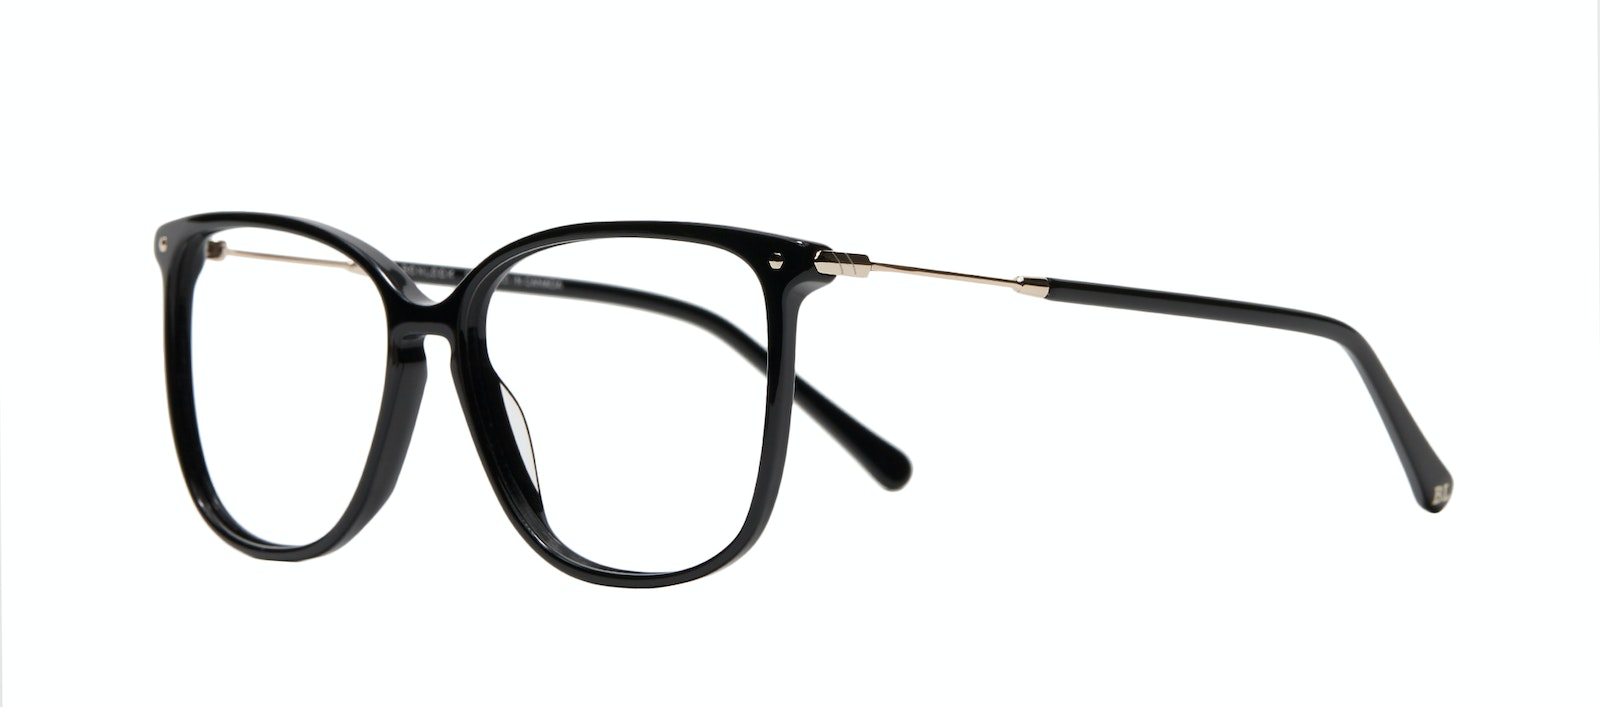 Affordable Fashion Glasses Square Eyeglasses Women Sonia M Pitch Black Tilt